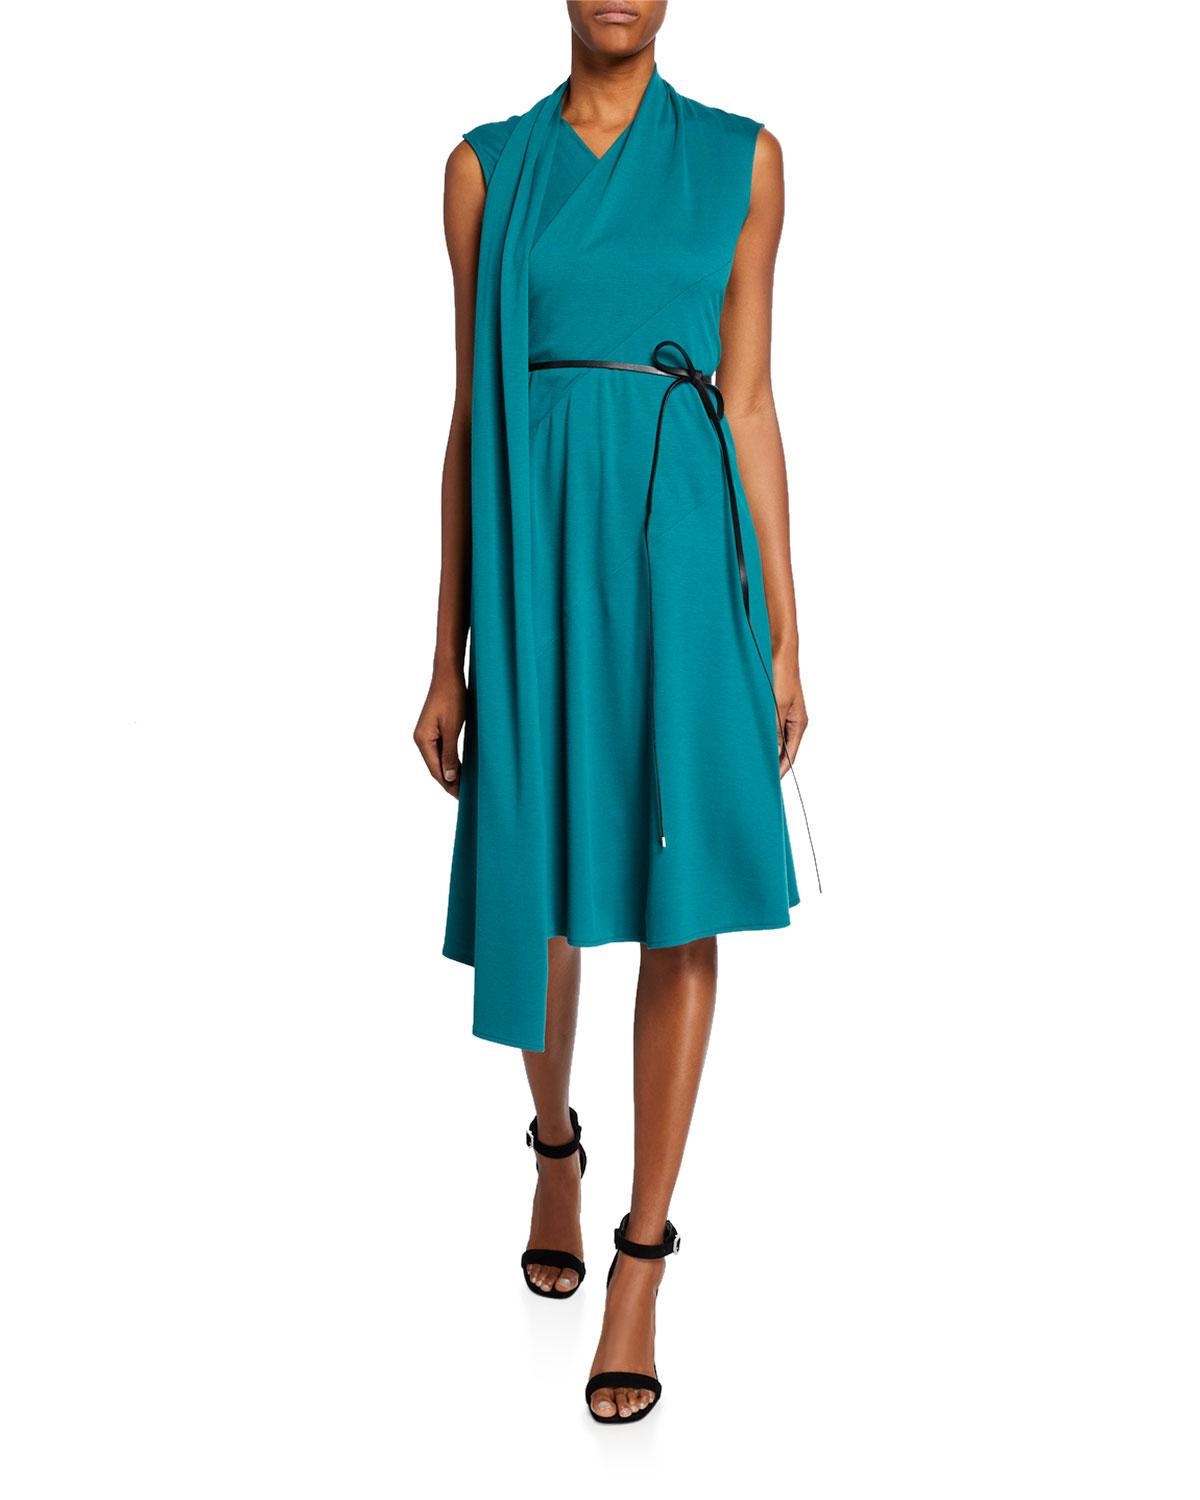 a189fd145d5 Lafayette 148 New York Nico Convertible Belted Dress in Blue - Lyst